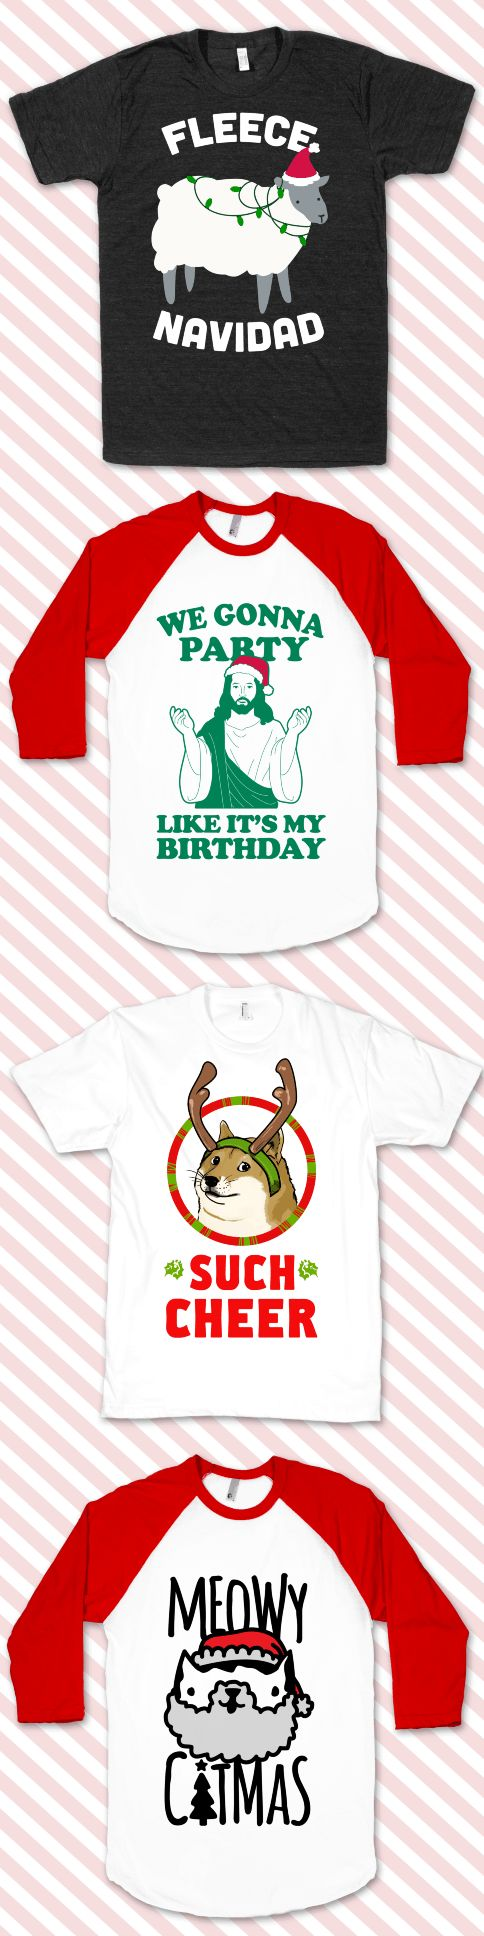 Celebrate Christmas time with all of these funny shirt designs. Perfect for gifts this season!